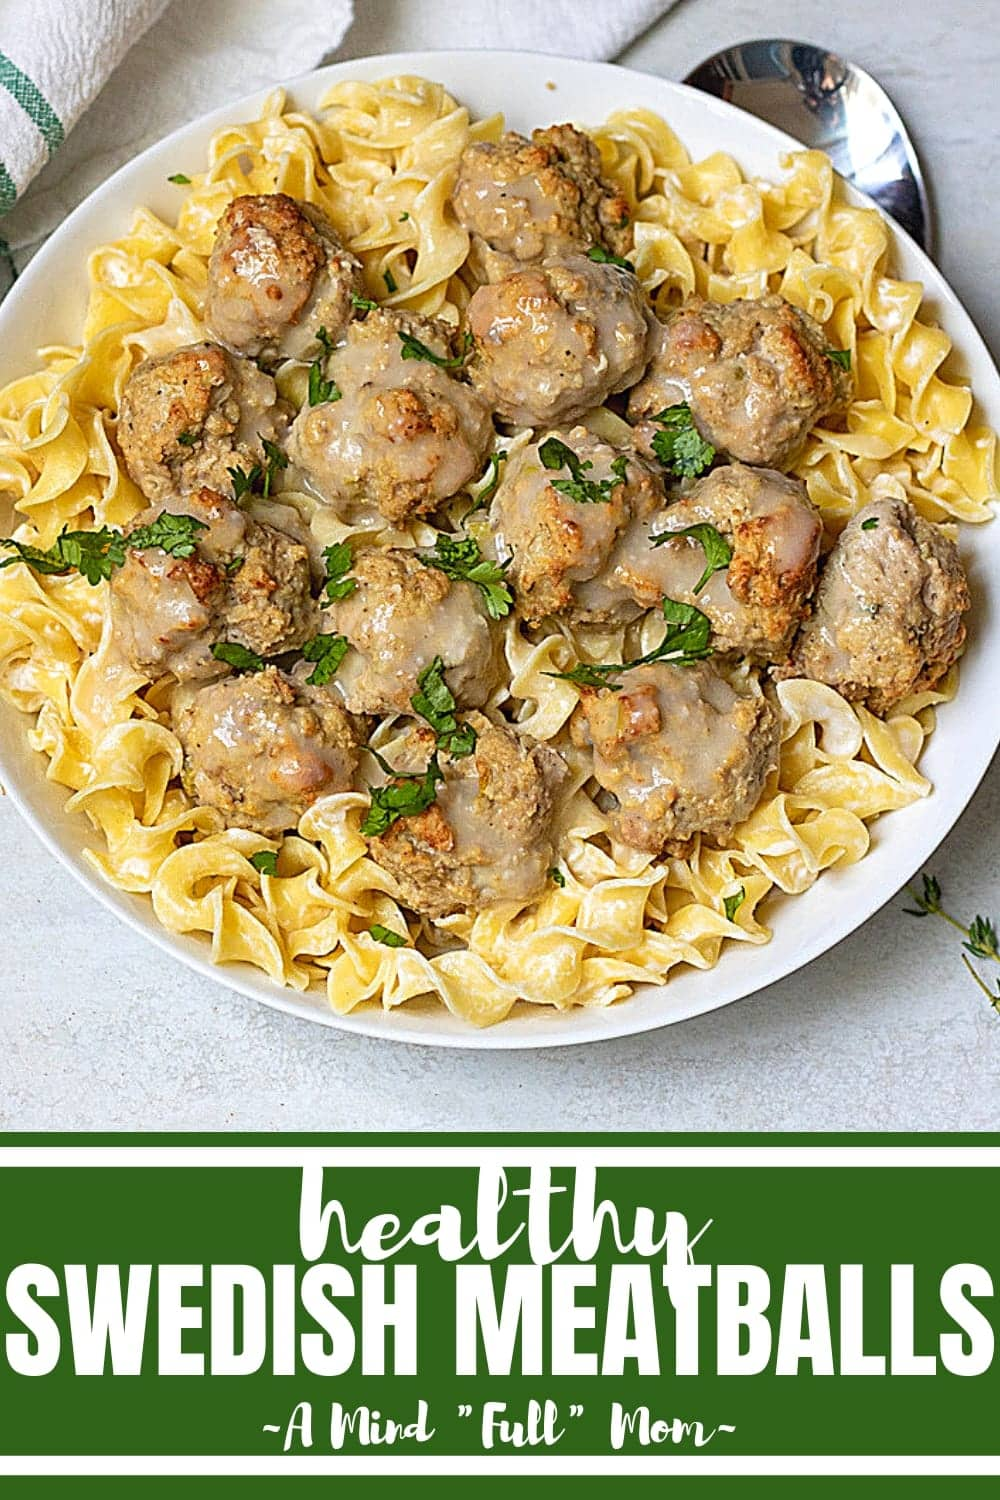 Move over IKEA! There is a new Swedish Meatball in town. These easy to make, lean turkey meatballs are lighter than traditional Swedish Meatballs but are still packed with flavor and served in a delicious creamy sauce.